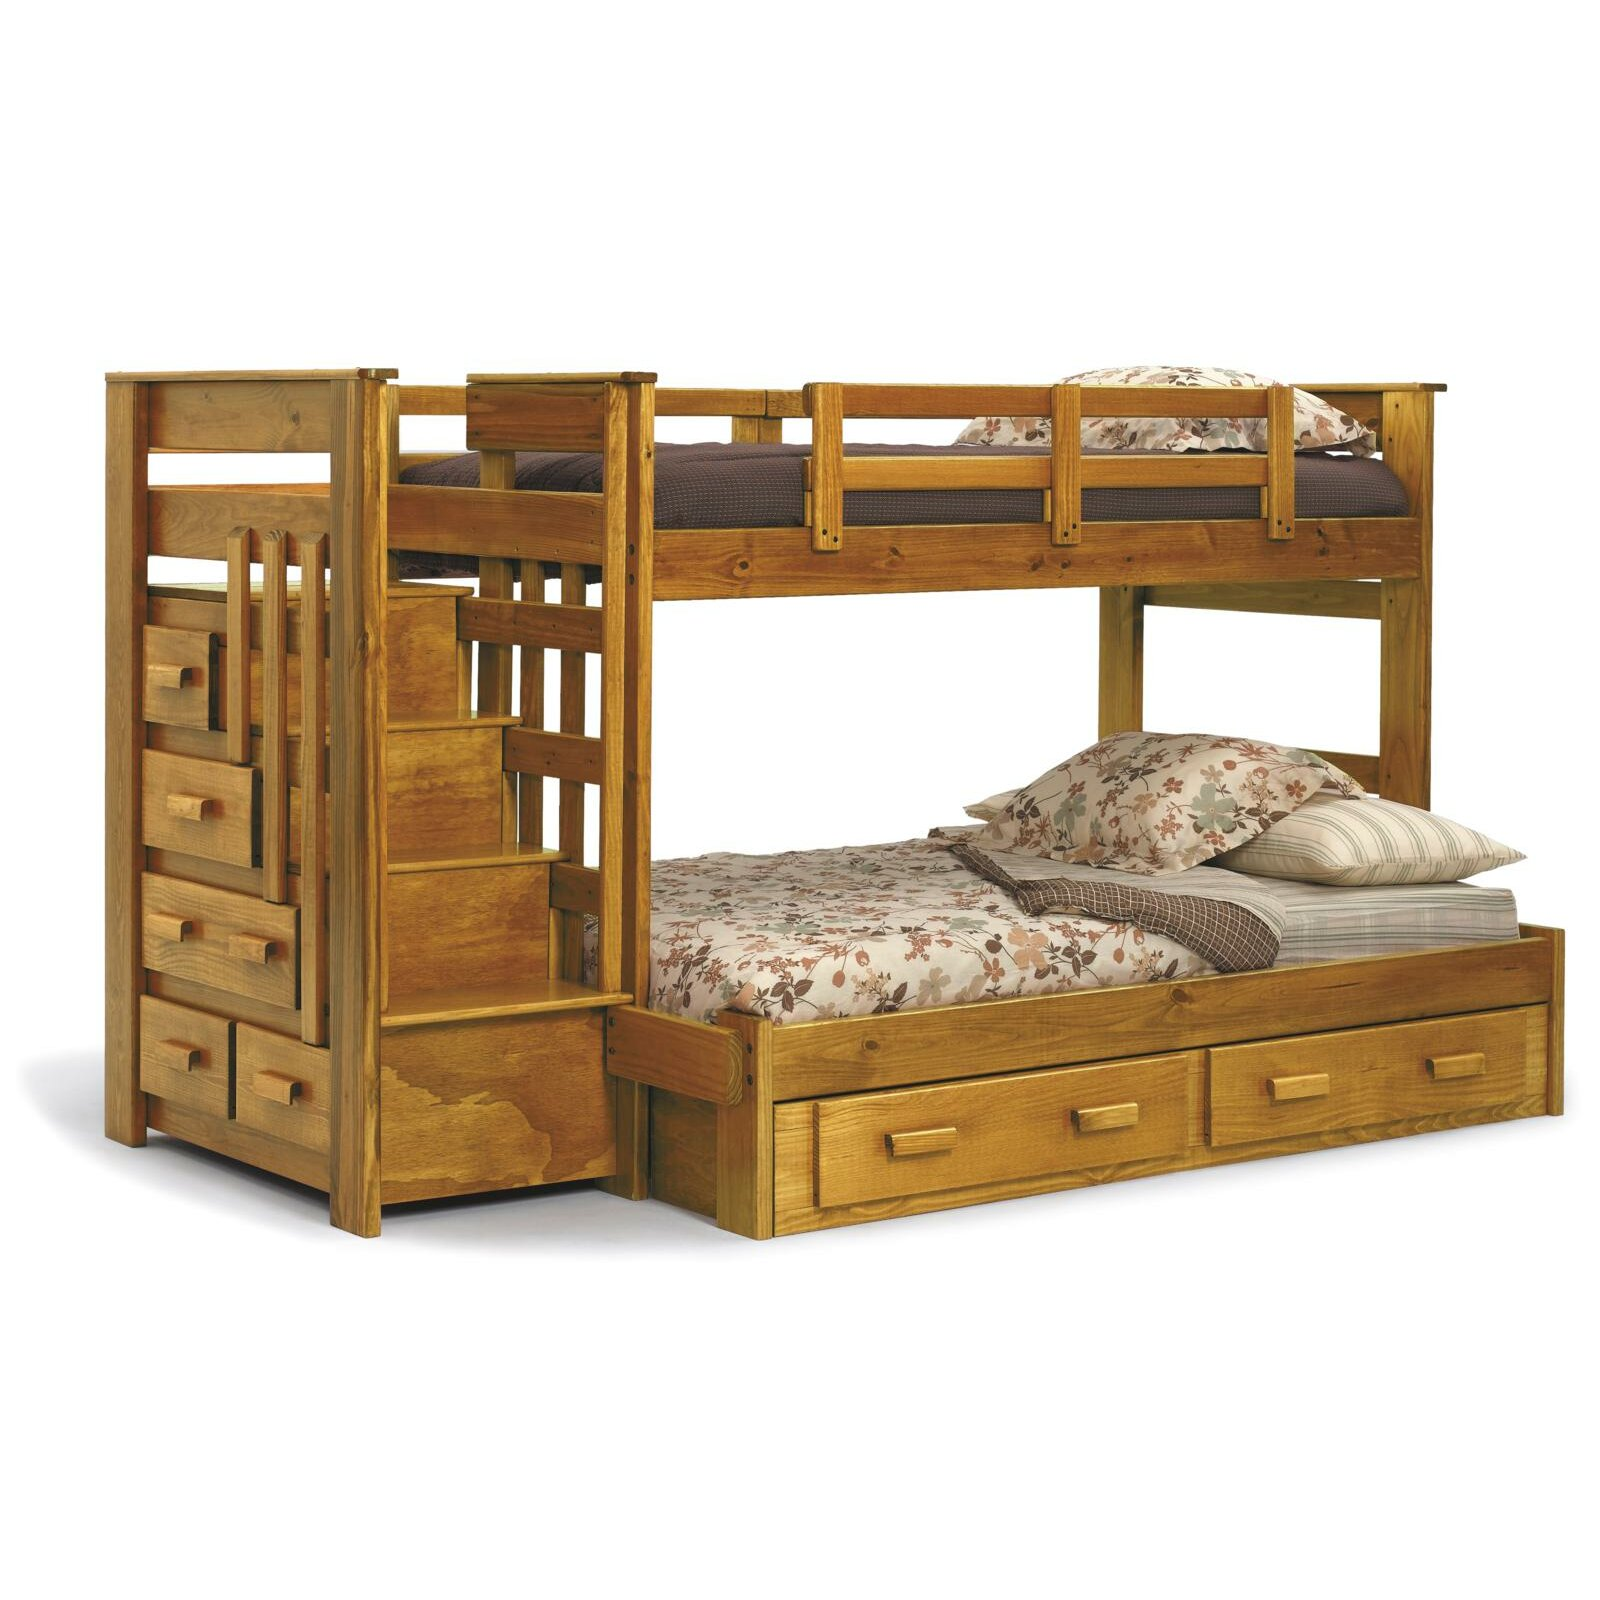 Buy Bunk Bed Twin Over Full